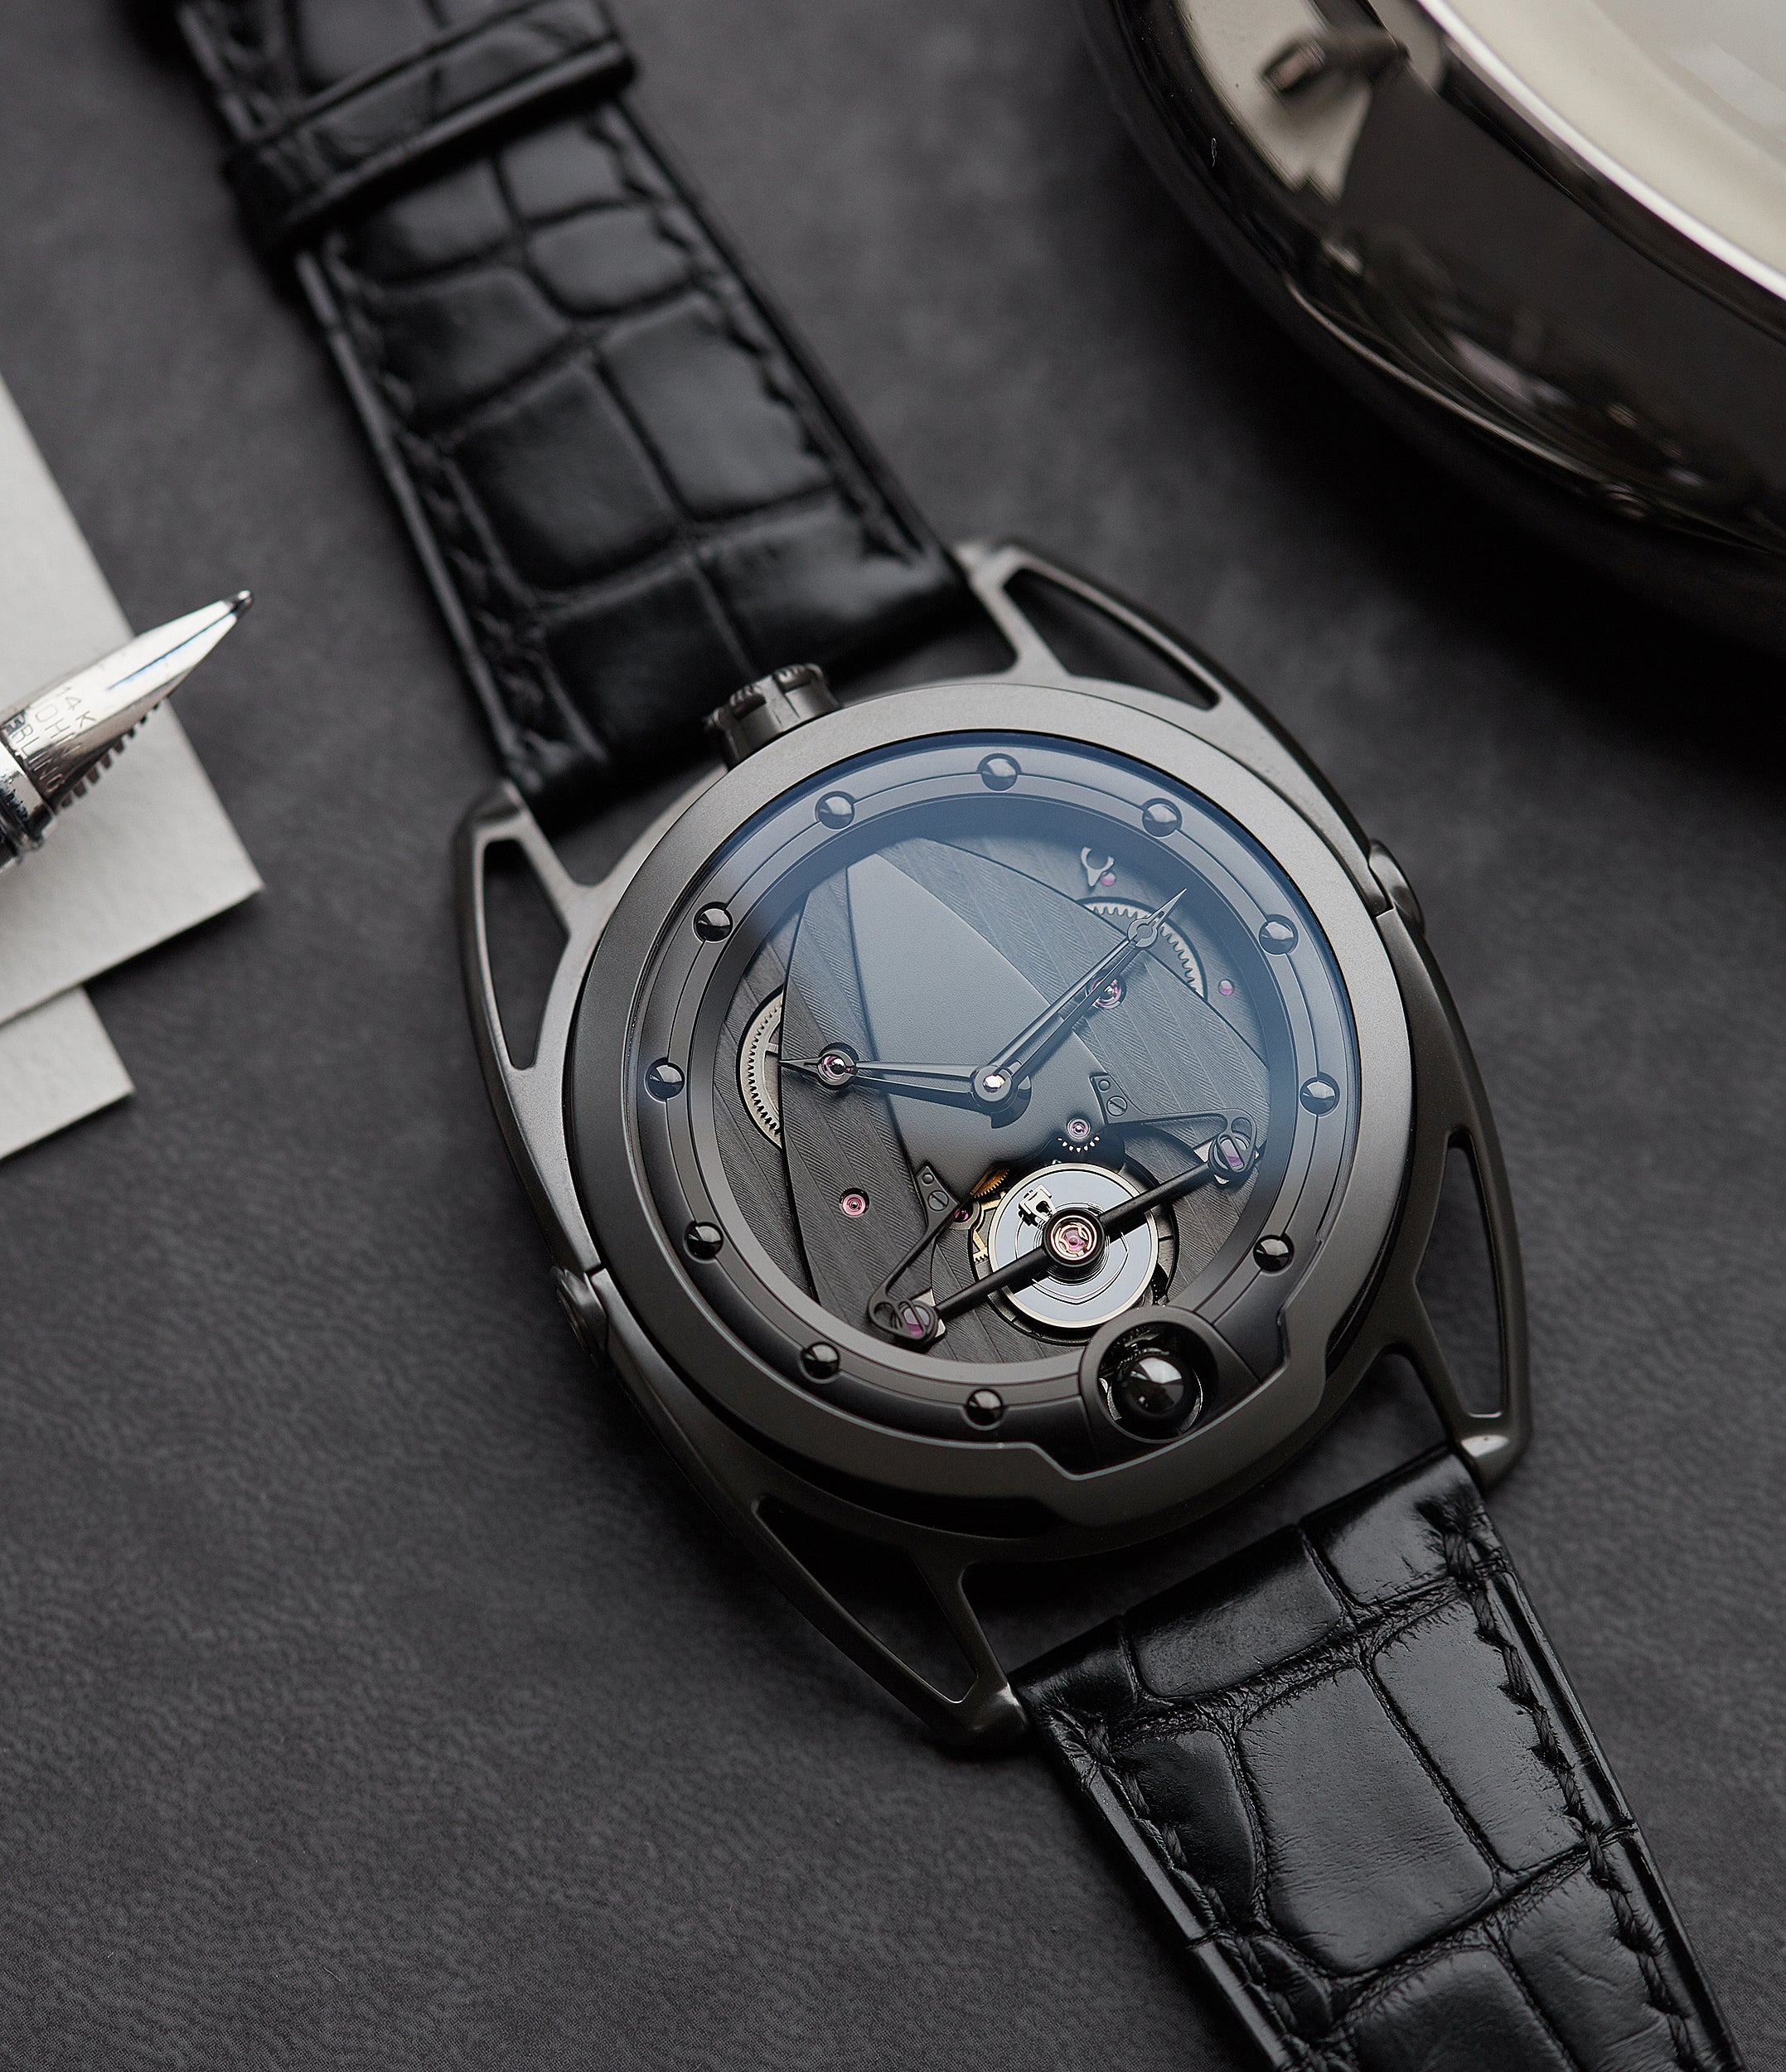 pre-owned De Bethune DB28 Dark Shadows independent watchmaker for sale online at A Collected Man London UK specilaist of rare watches